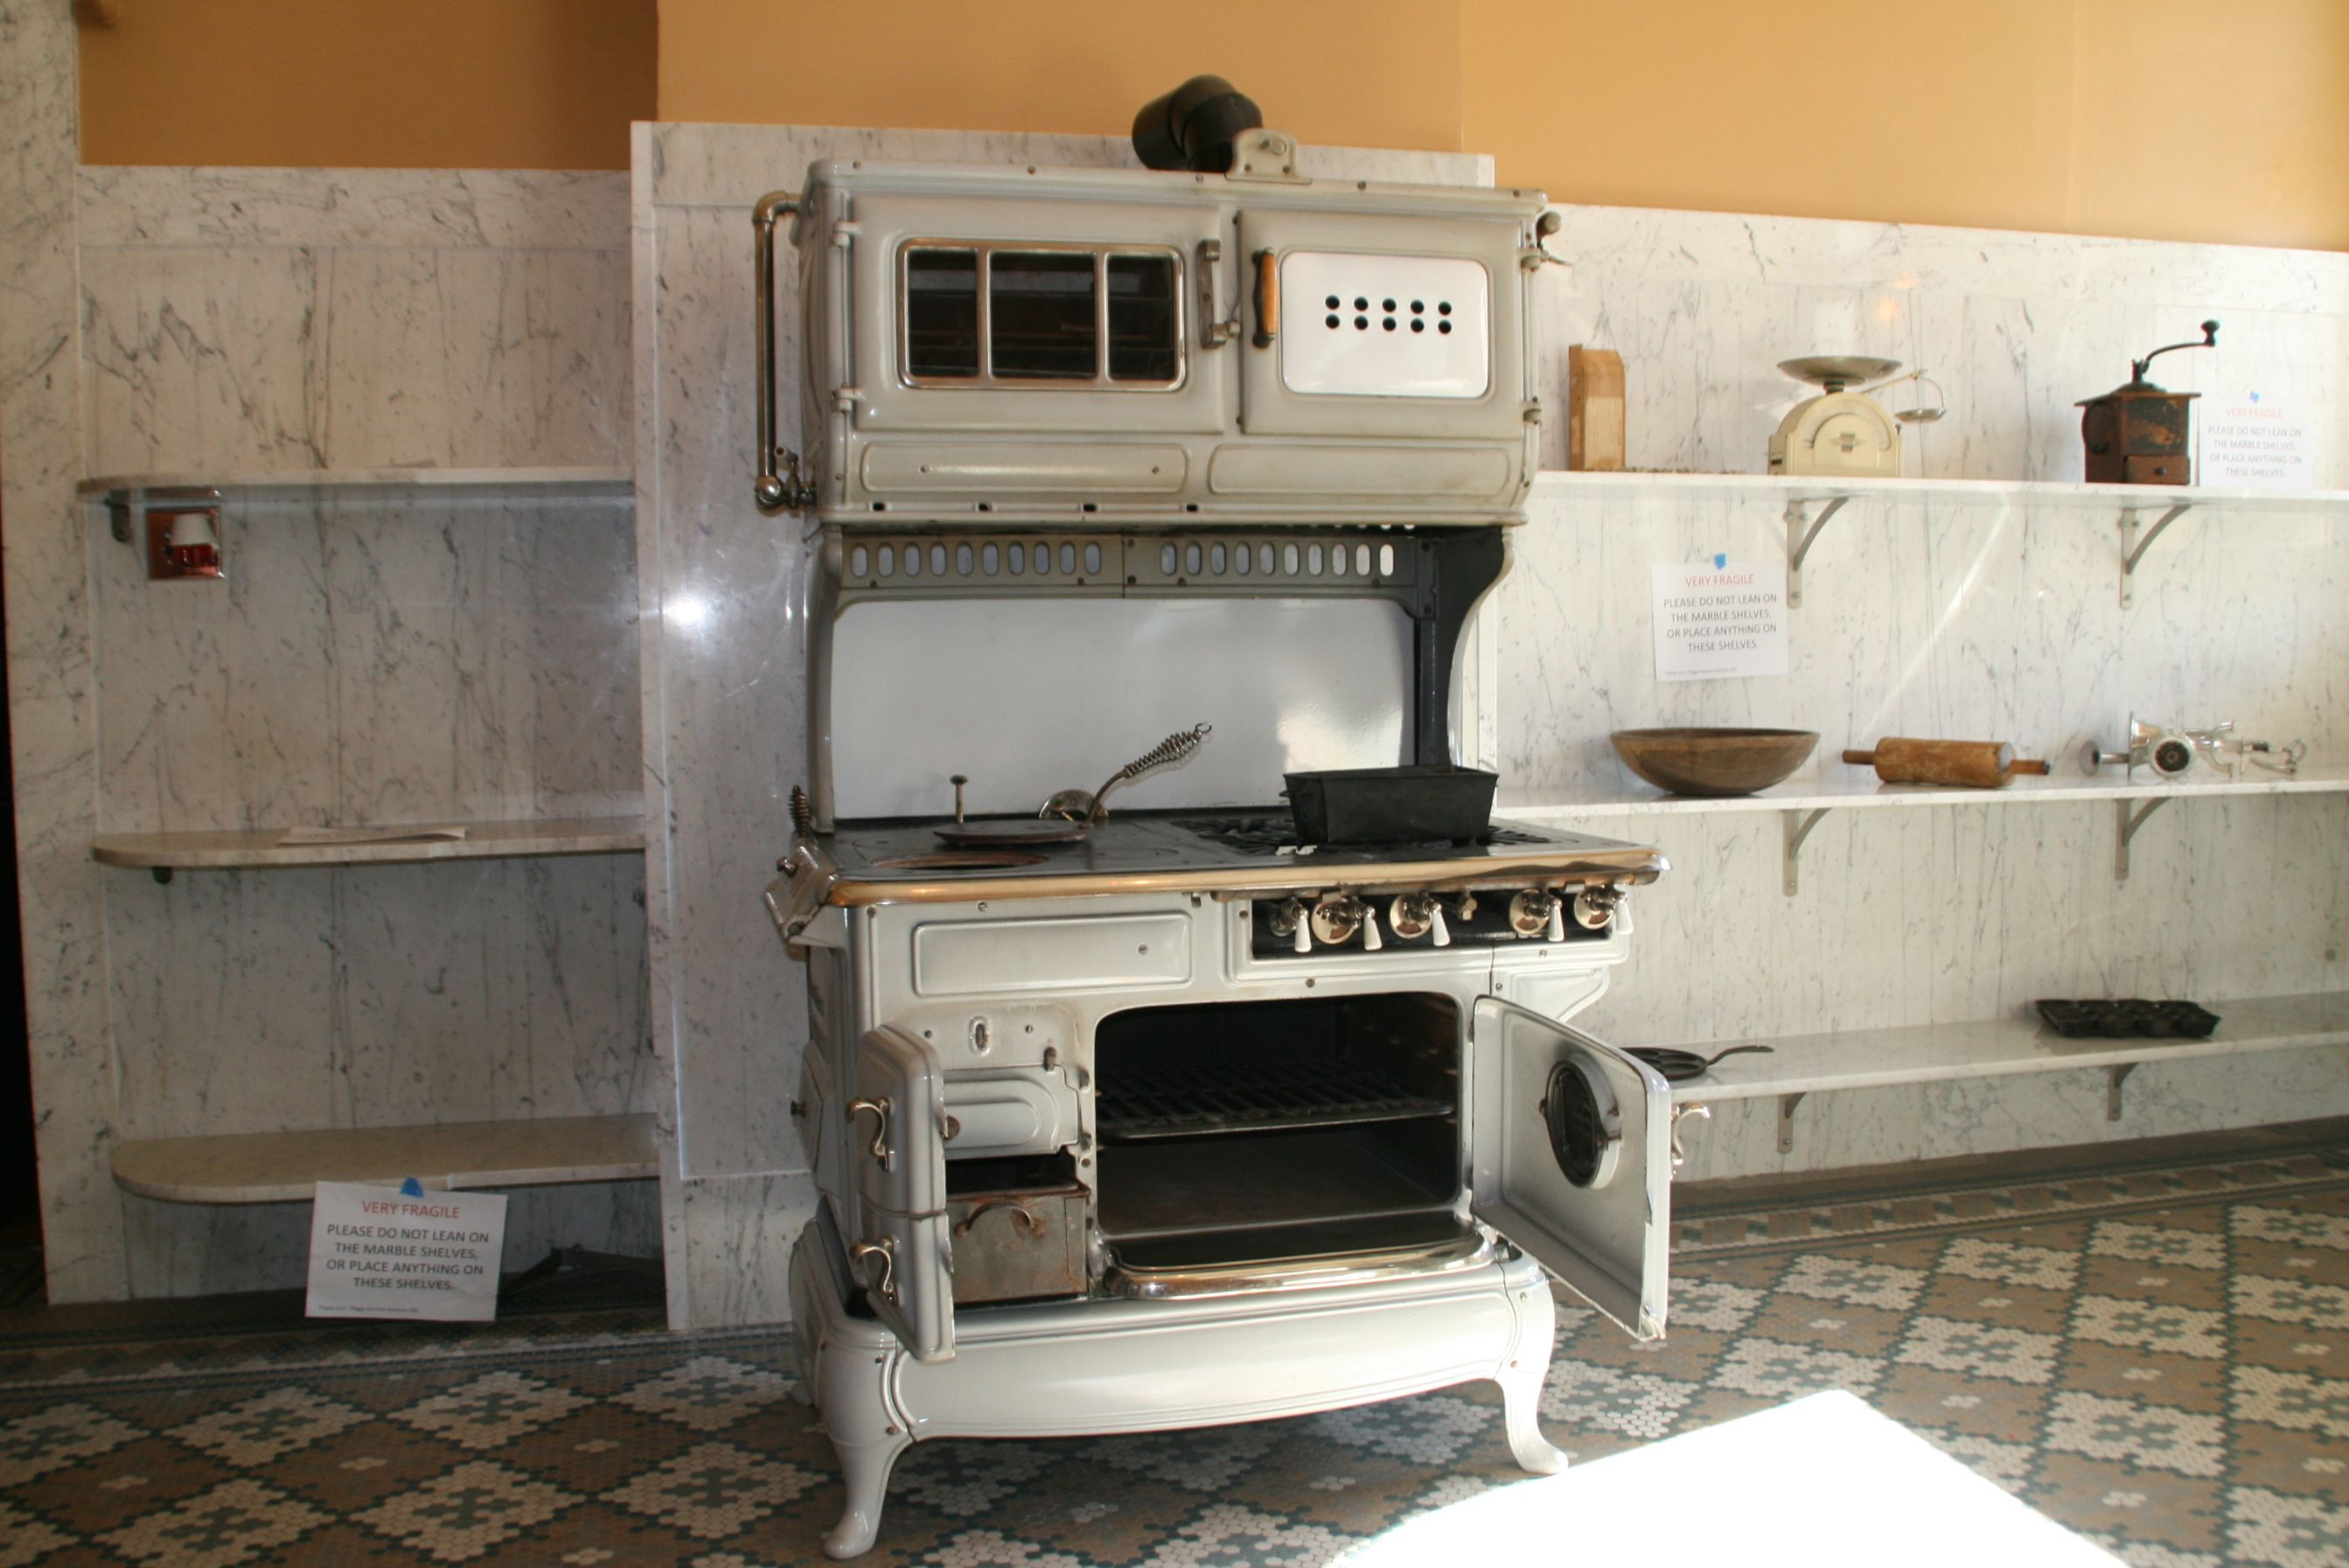 the_state-of-the-art_stove_could_use_both_gas_and_wood